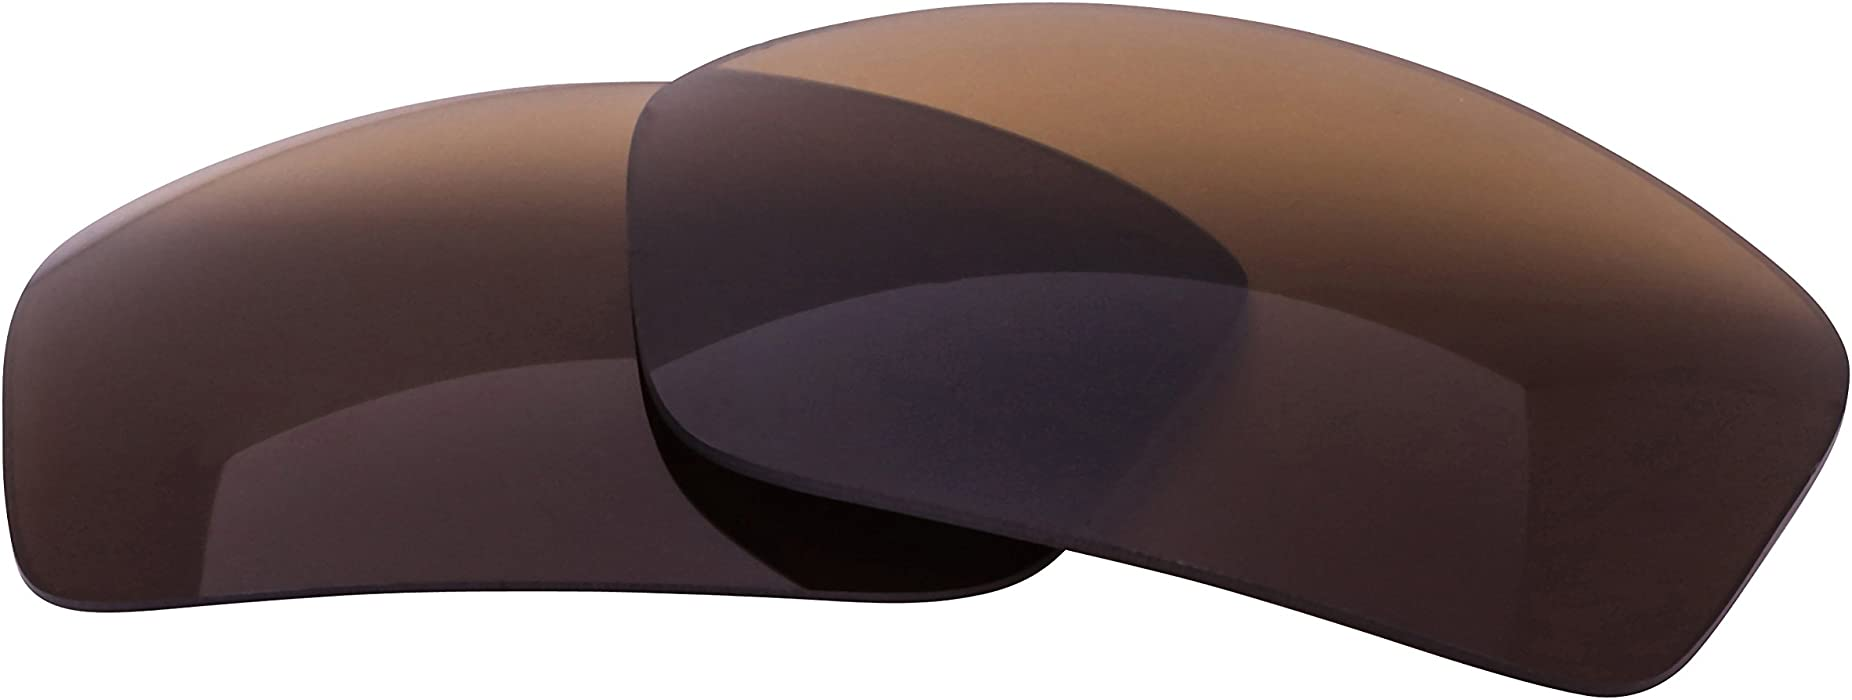 212da330b3 Replacement Lenses Compatible with Spy LOGAN Sunglasses - Crafted in the  USA  Multiple Options. LenzFlip Lenses Compatible with Spy LOGAN - Brown